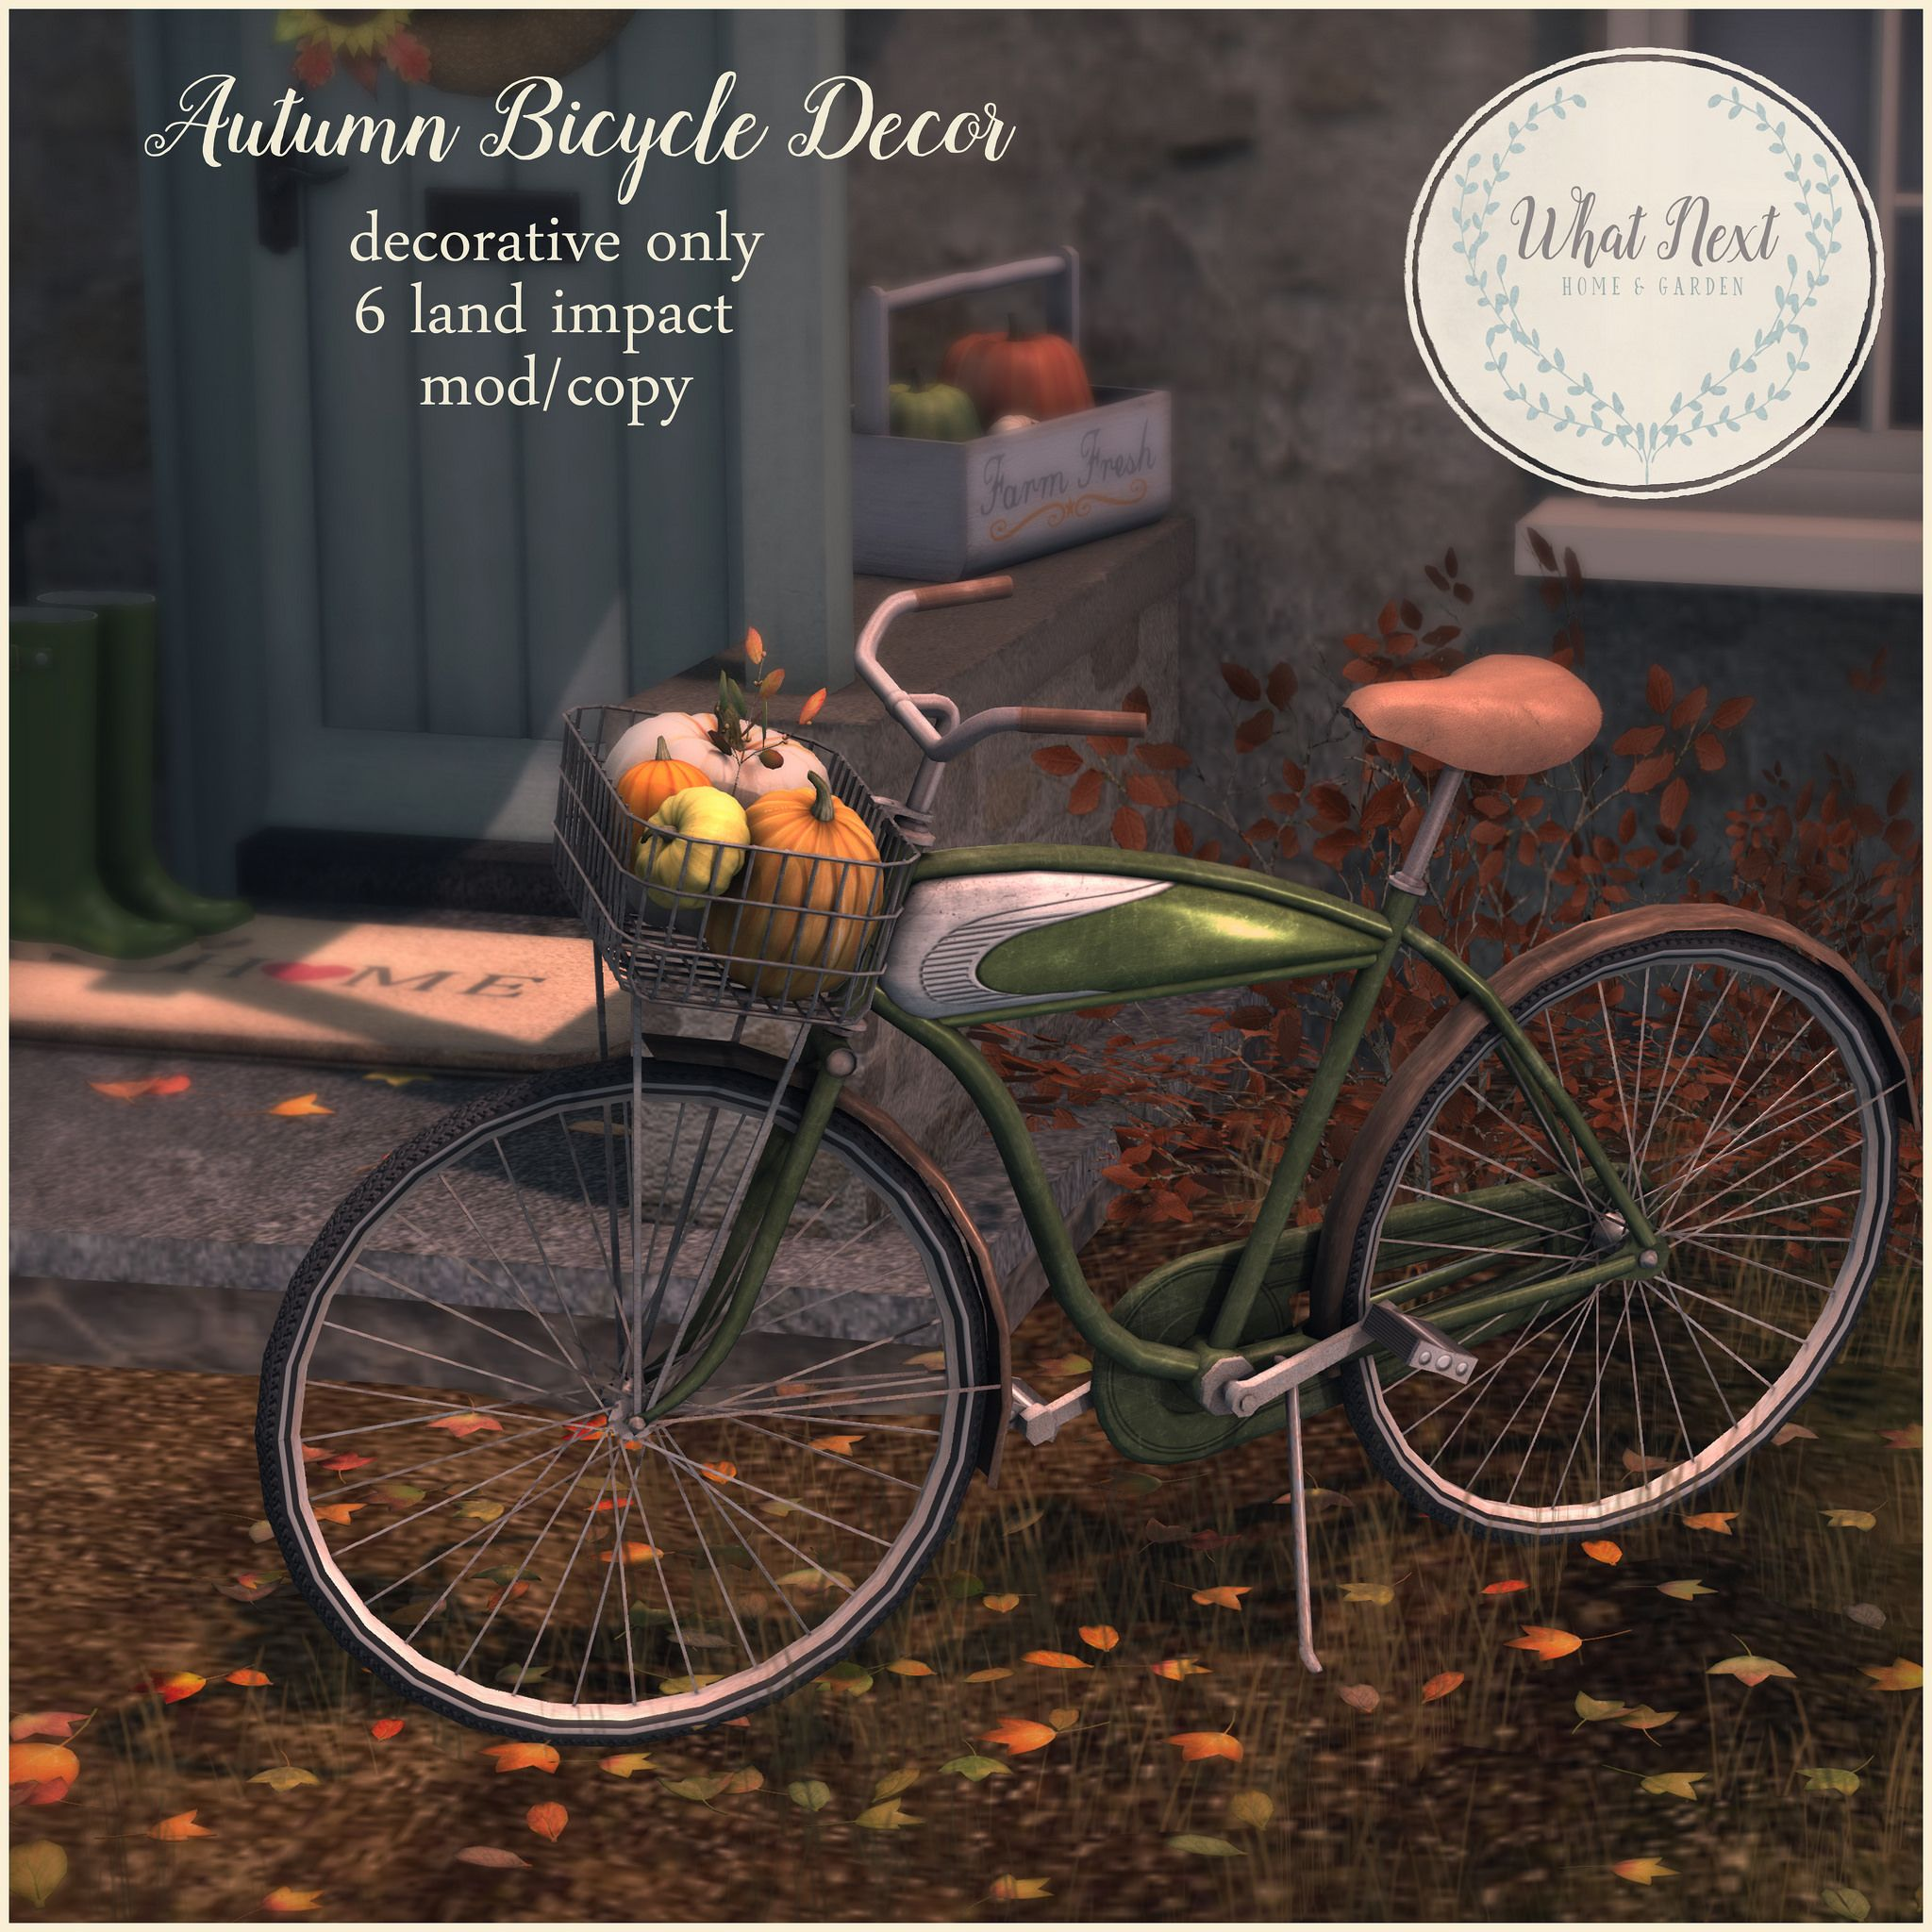 https://flic.kr/p/M2K3QS | {what next} Autumn Bicycle Decor for Collabor88 | Autumn Bicycle Decor for Oct Collabor88!